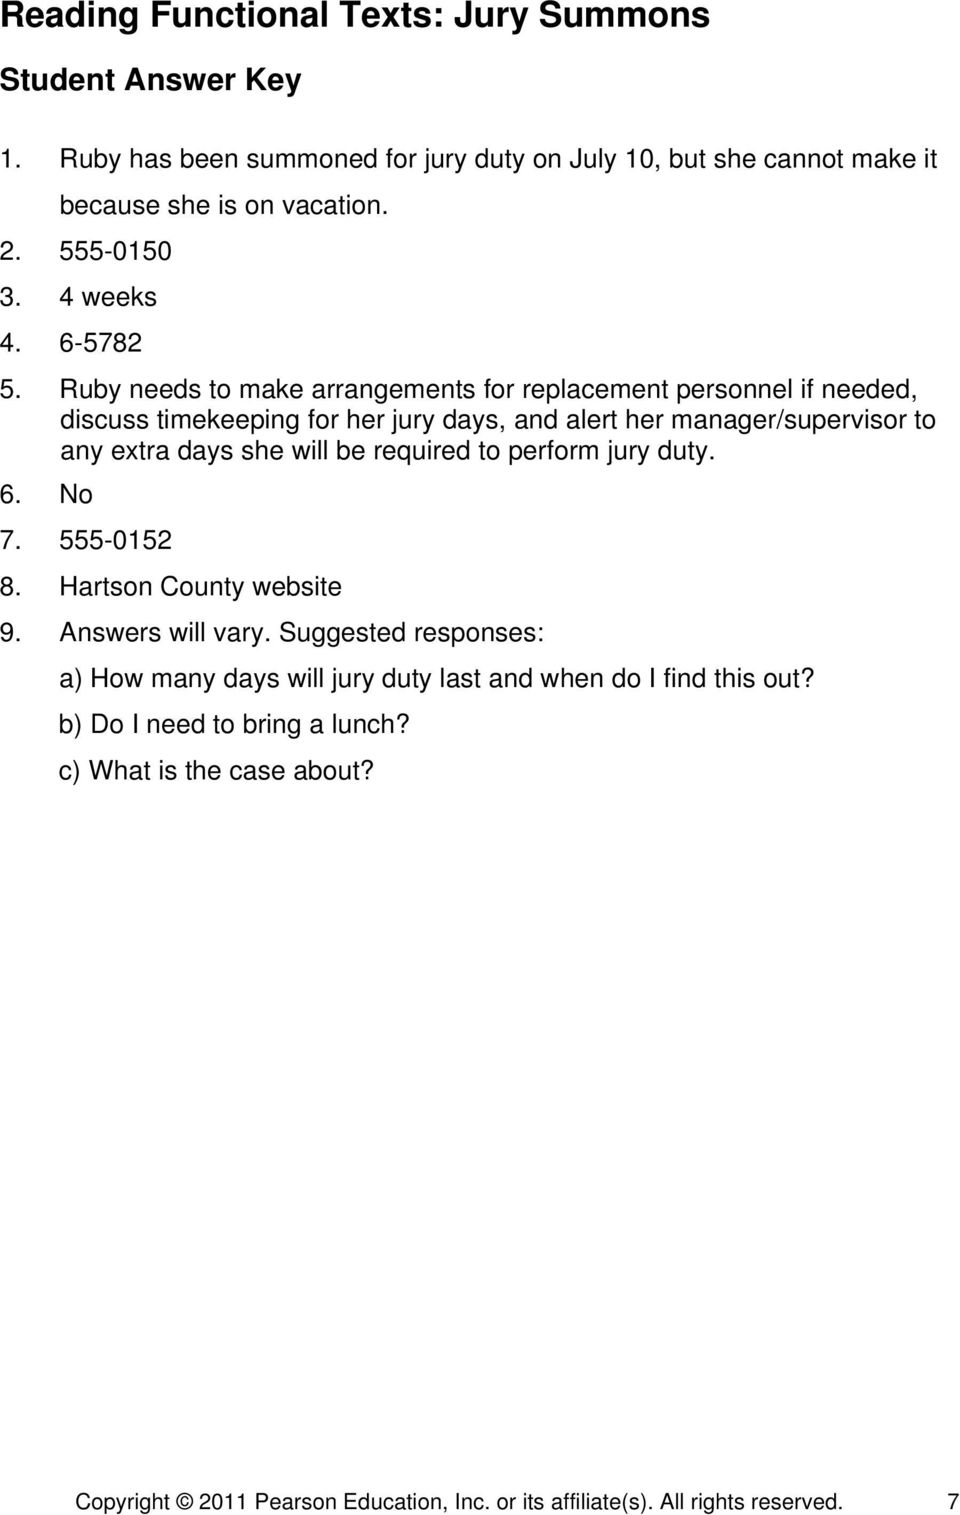 will be required to perform jury duty. 6. No 7. 555-0152 8. Hartson County website 9. Answers will vary.